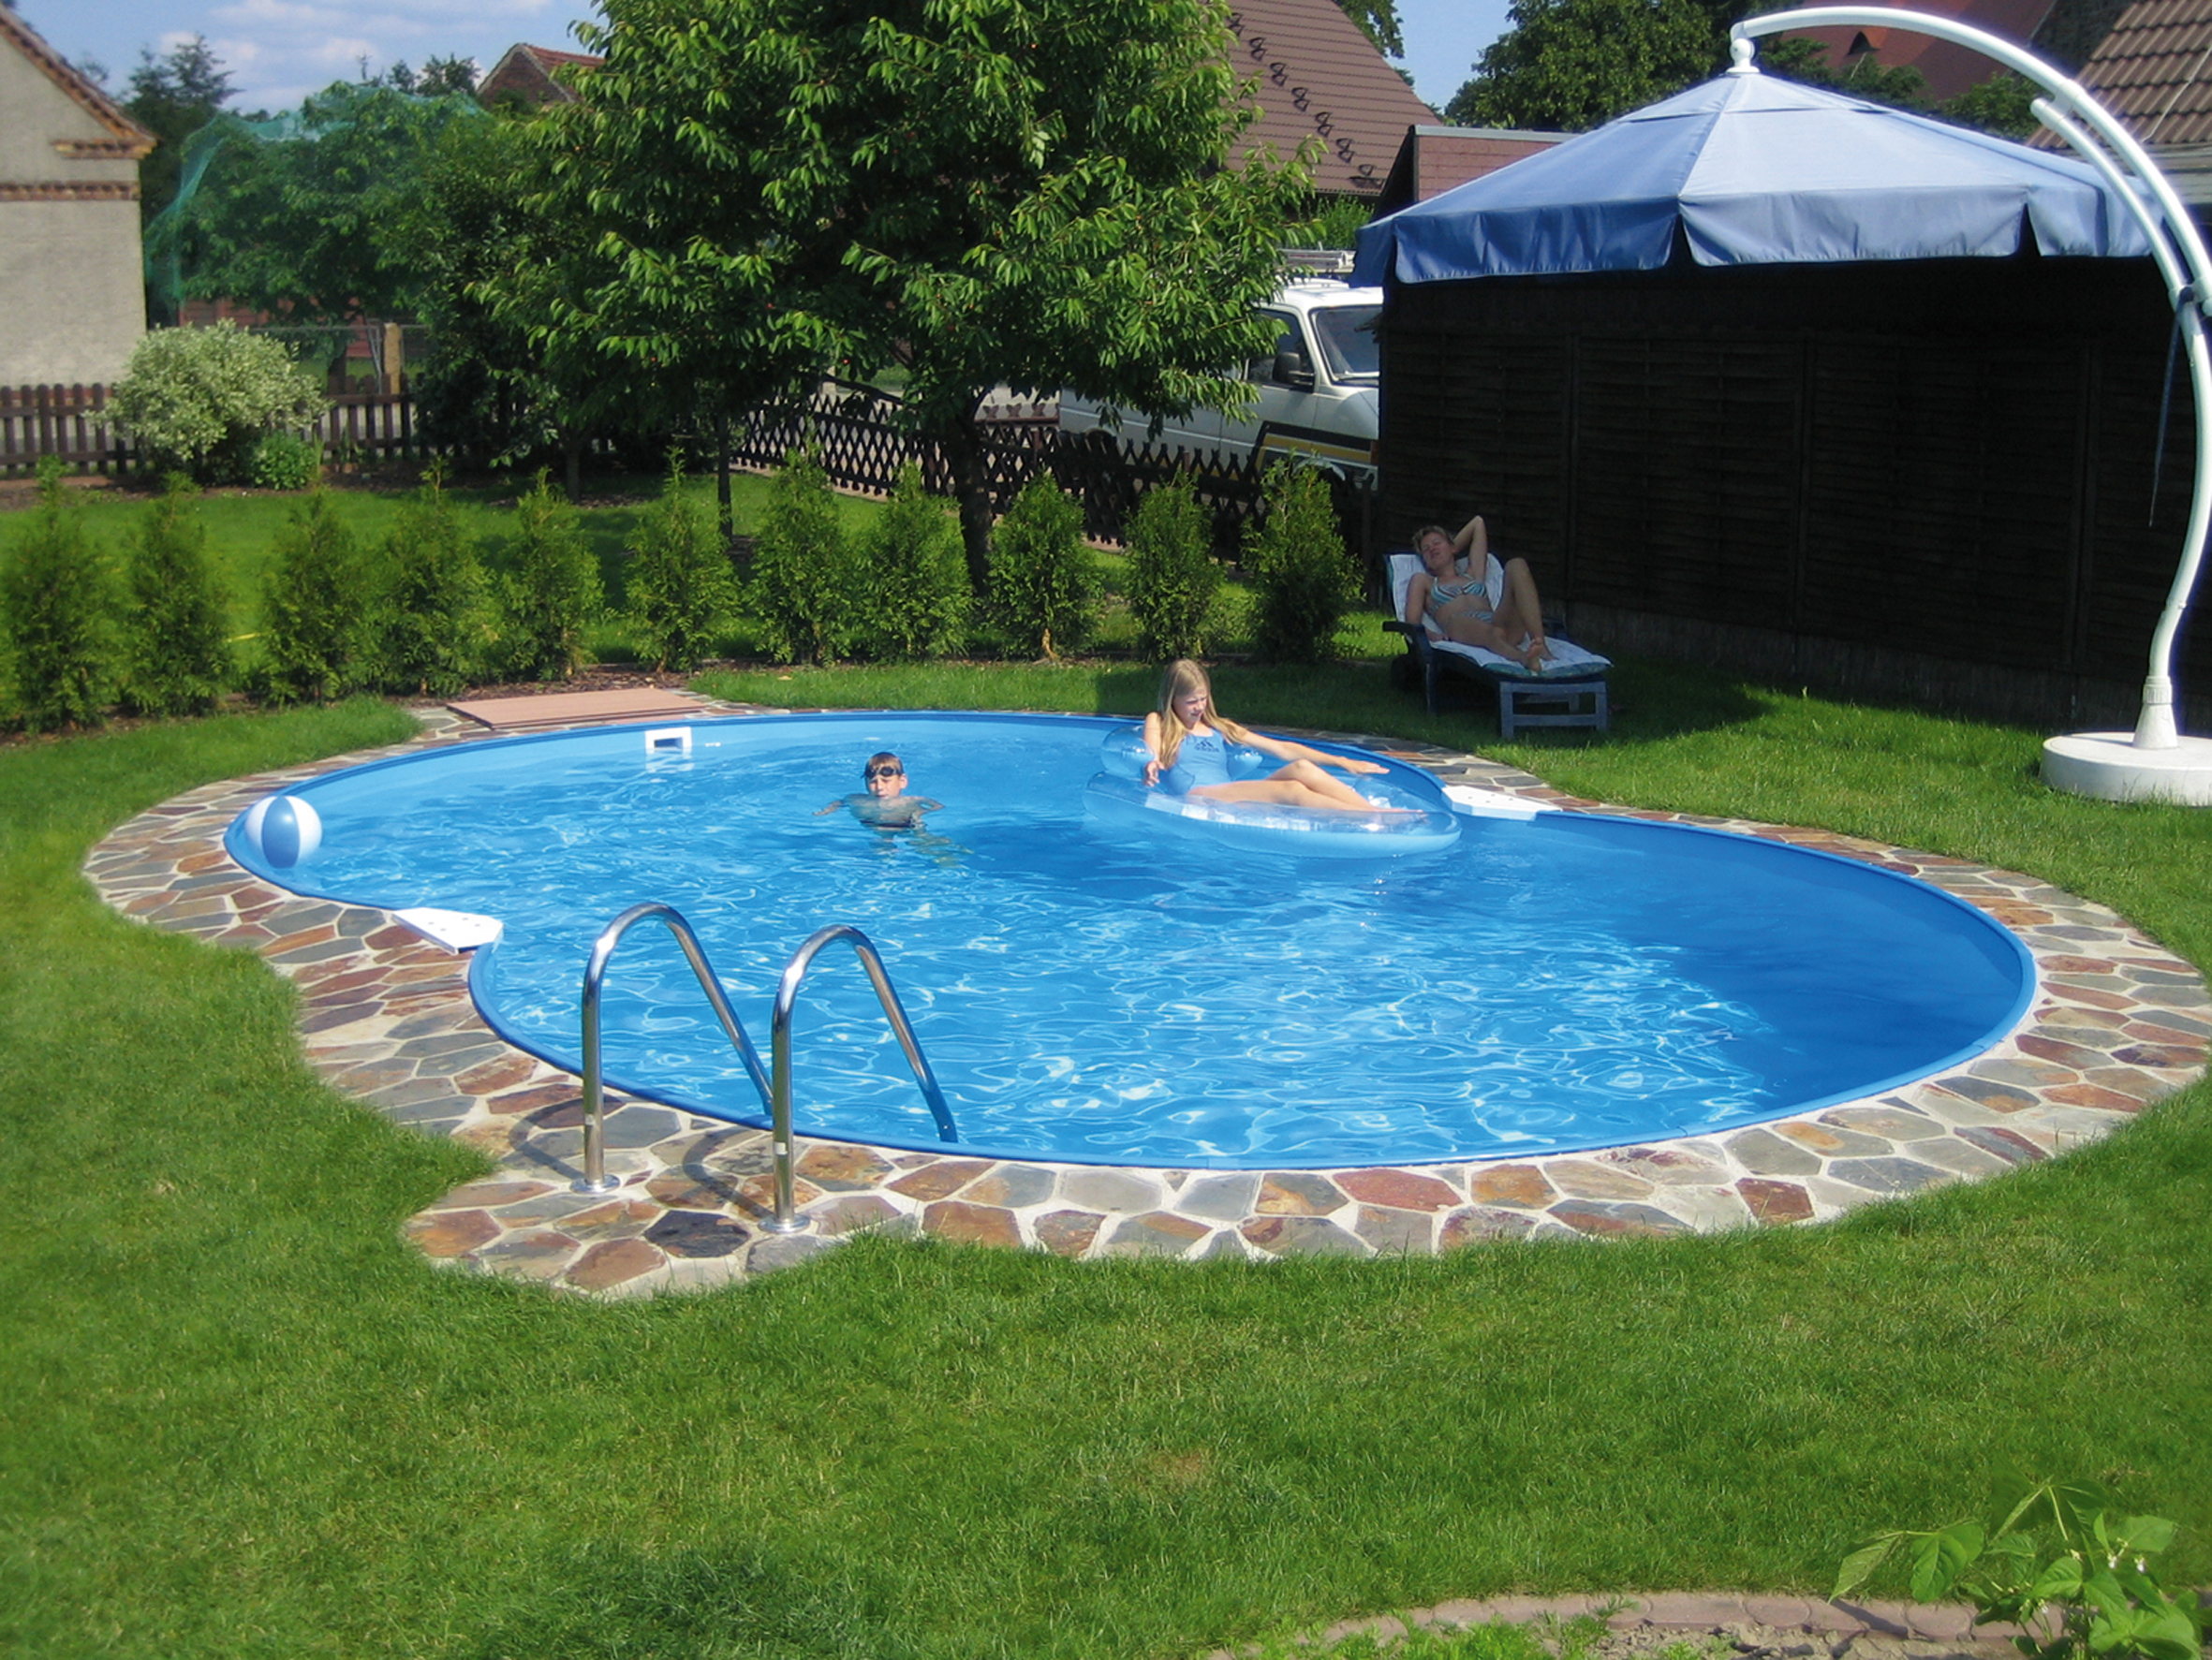 Top Small Back Yard Swimming Pool Designs 2362 x 1773 · 2833 kB · jpeg